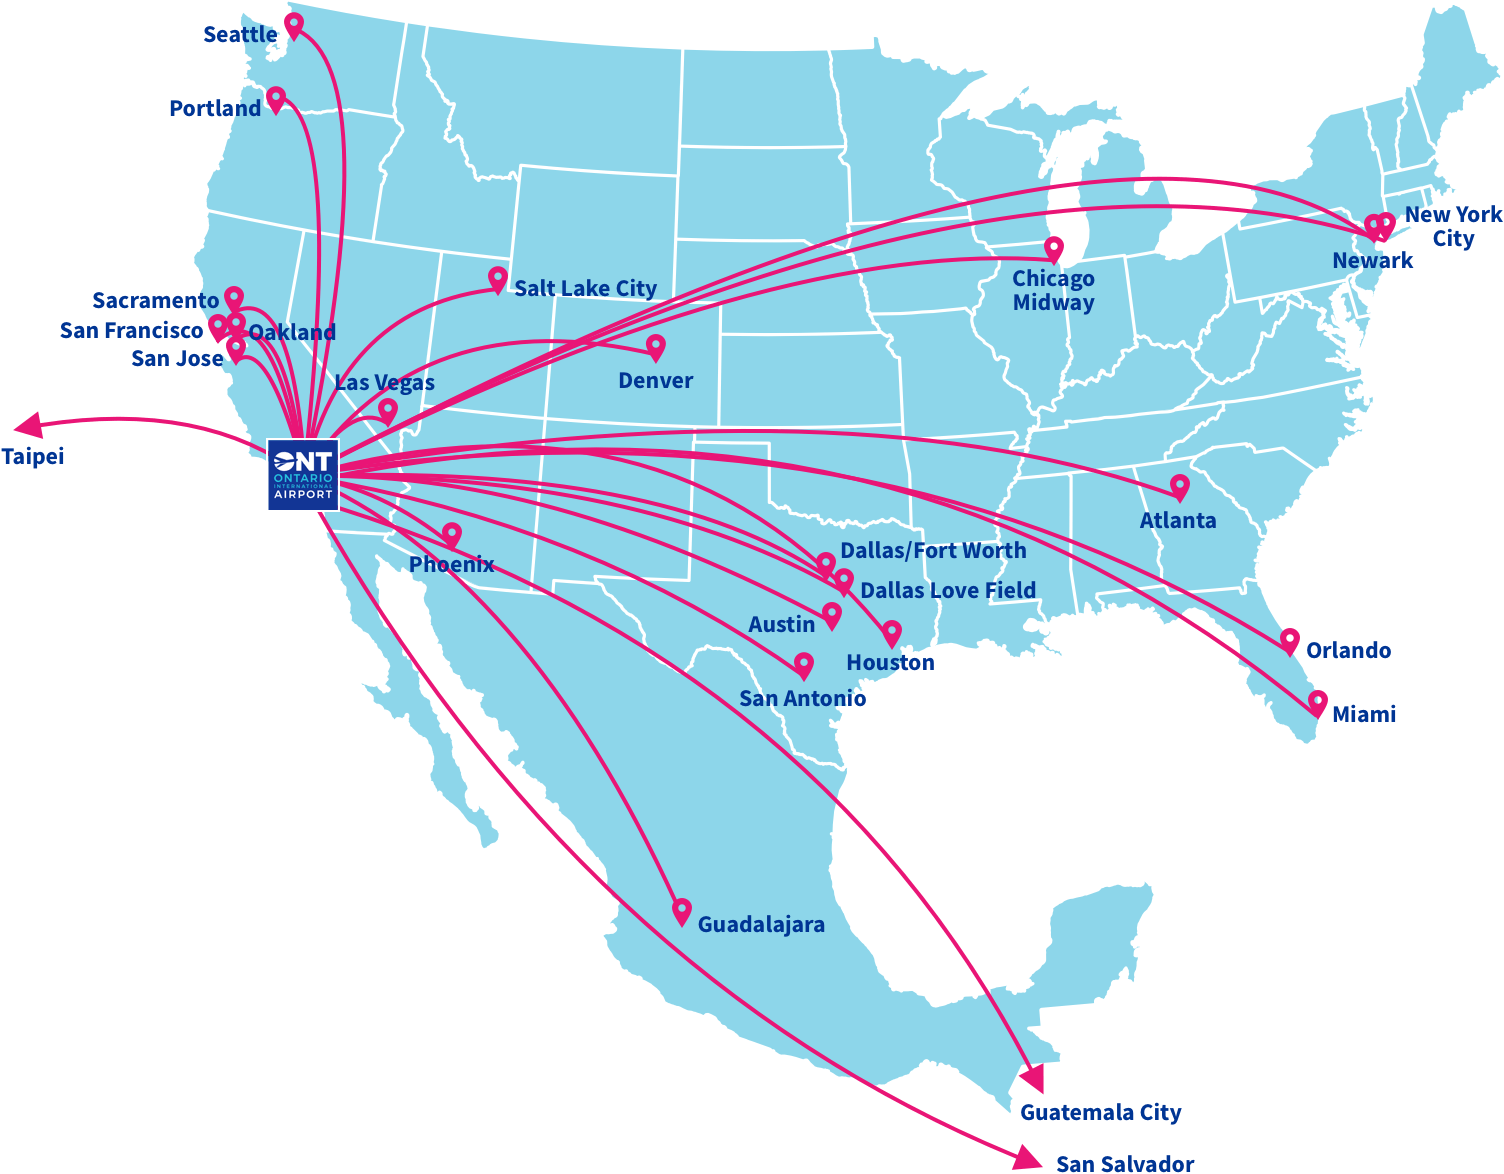 Nonstop Destinations | Ontario Internation Airport on southwest attraction map, south west air route map, southwest cargo map, southwest route map, southwest flight status, southwest reservation map, southwest fare map, southwest flying map, southwest airlines, southwest pilots, south west colorado road map, southwest service map, southwest flight schedule, southwest airtran destinations, southwest airport map, south west jackson ms map, airtran map, southwest transit map,